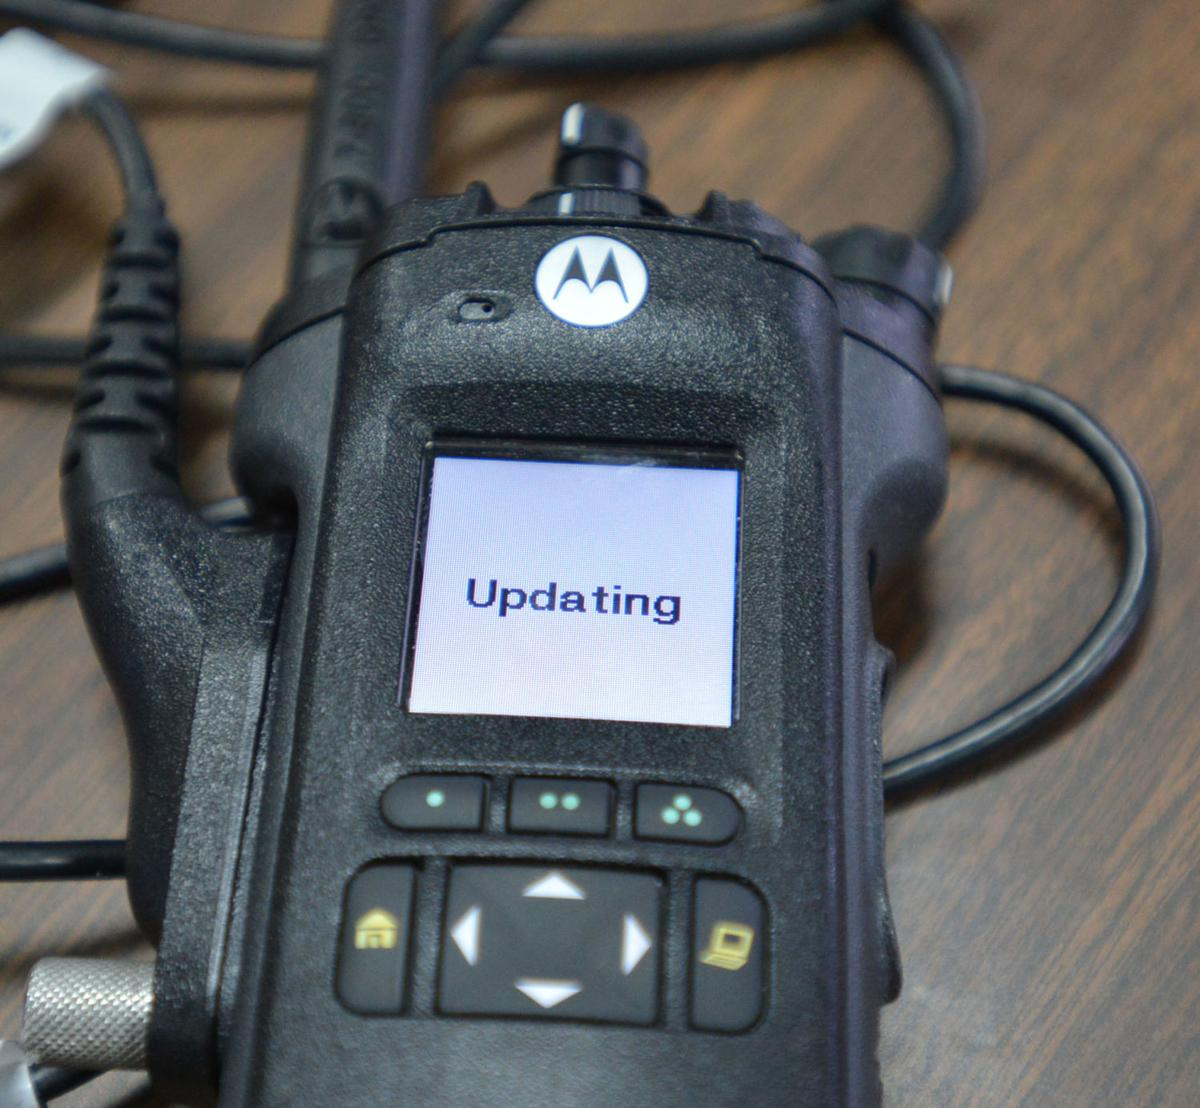 Sullivan County's dispatch scanner channels will be encrypted to